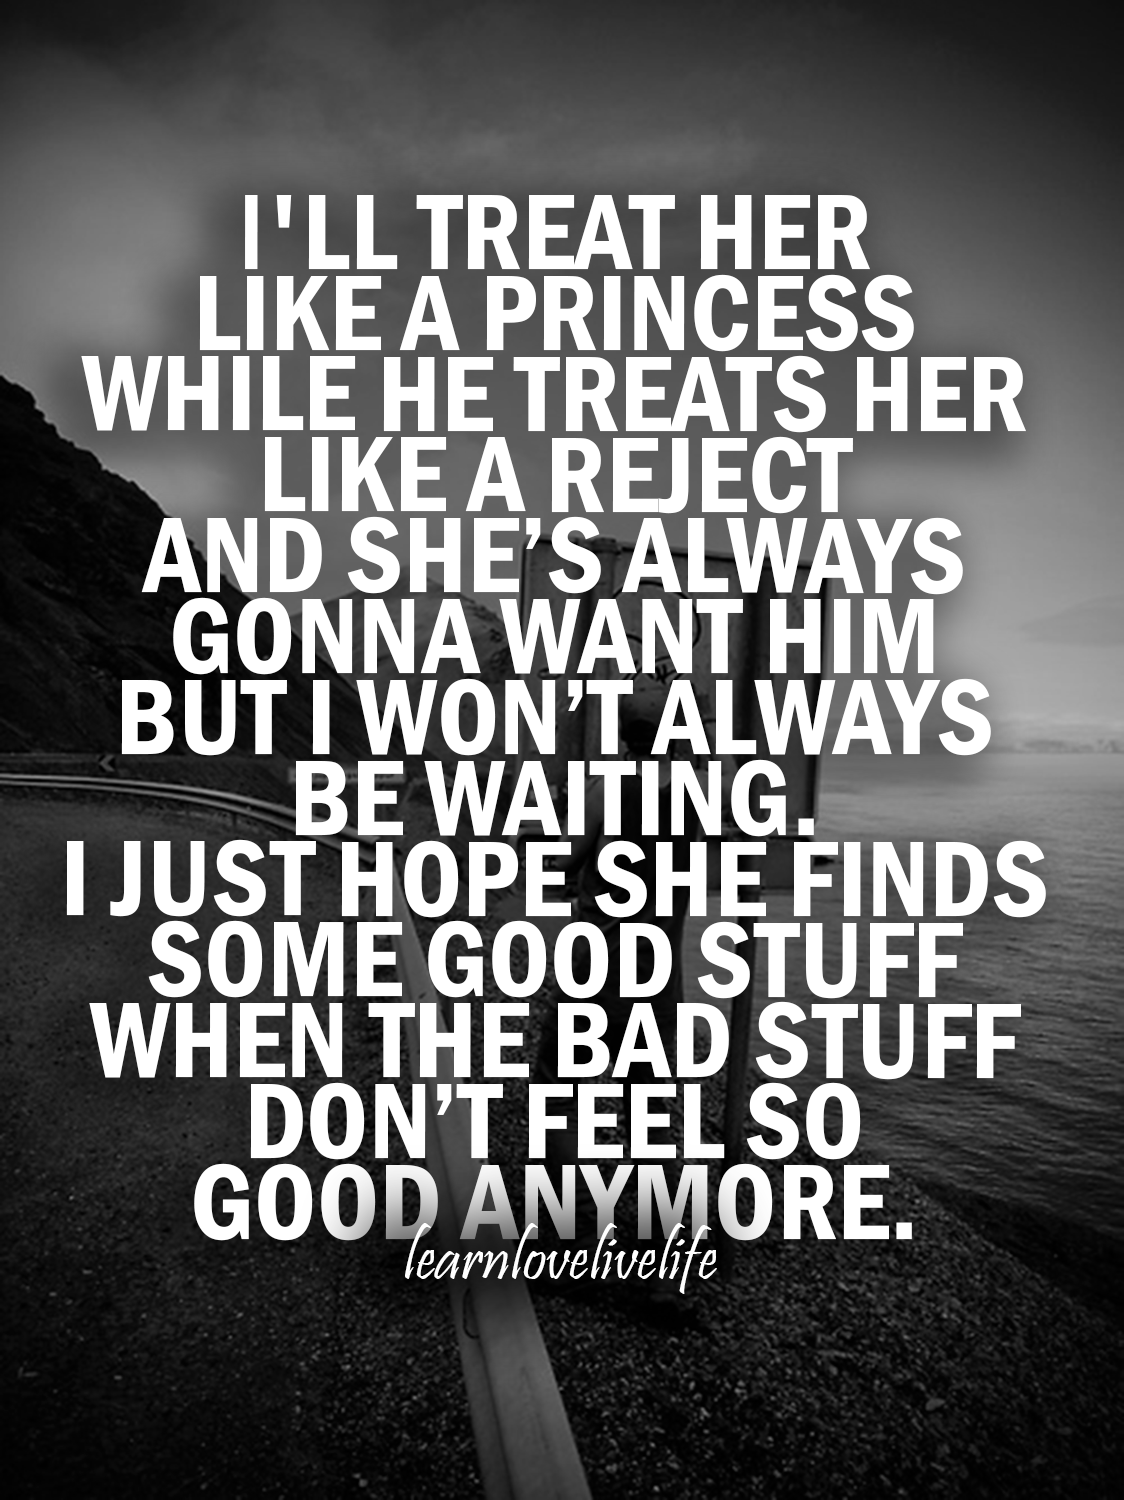 55 Best Break Up Quotes To Make You Feel Better